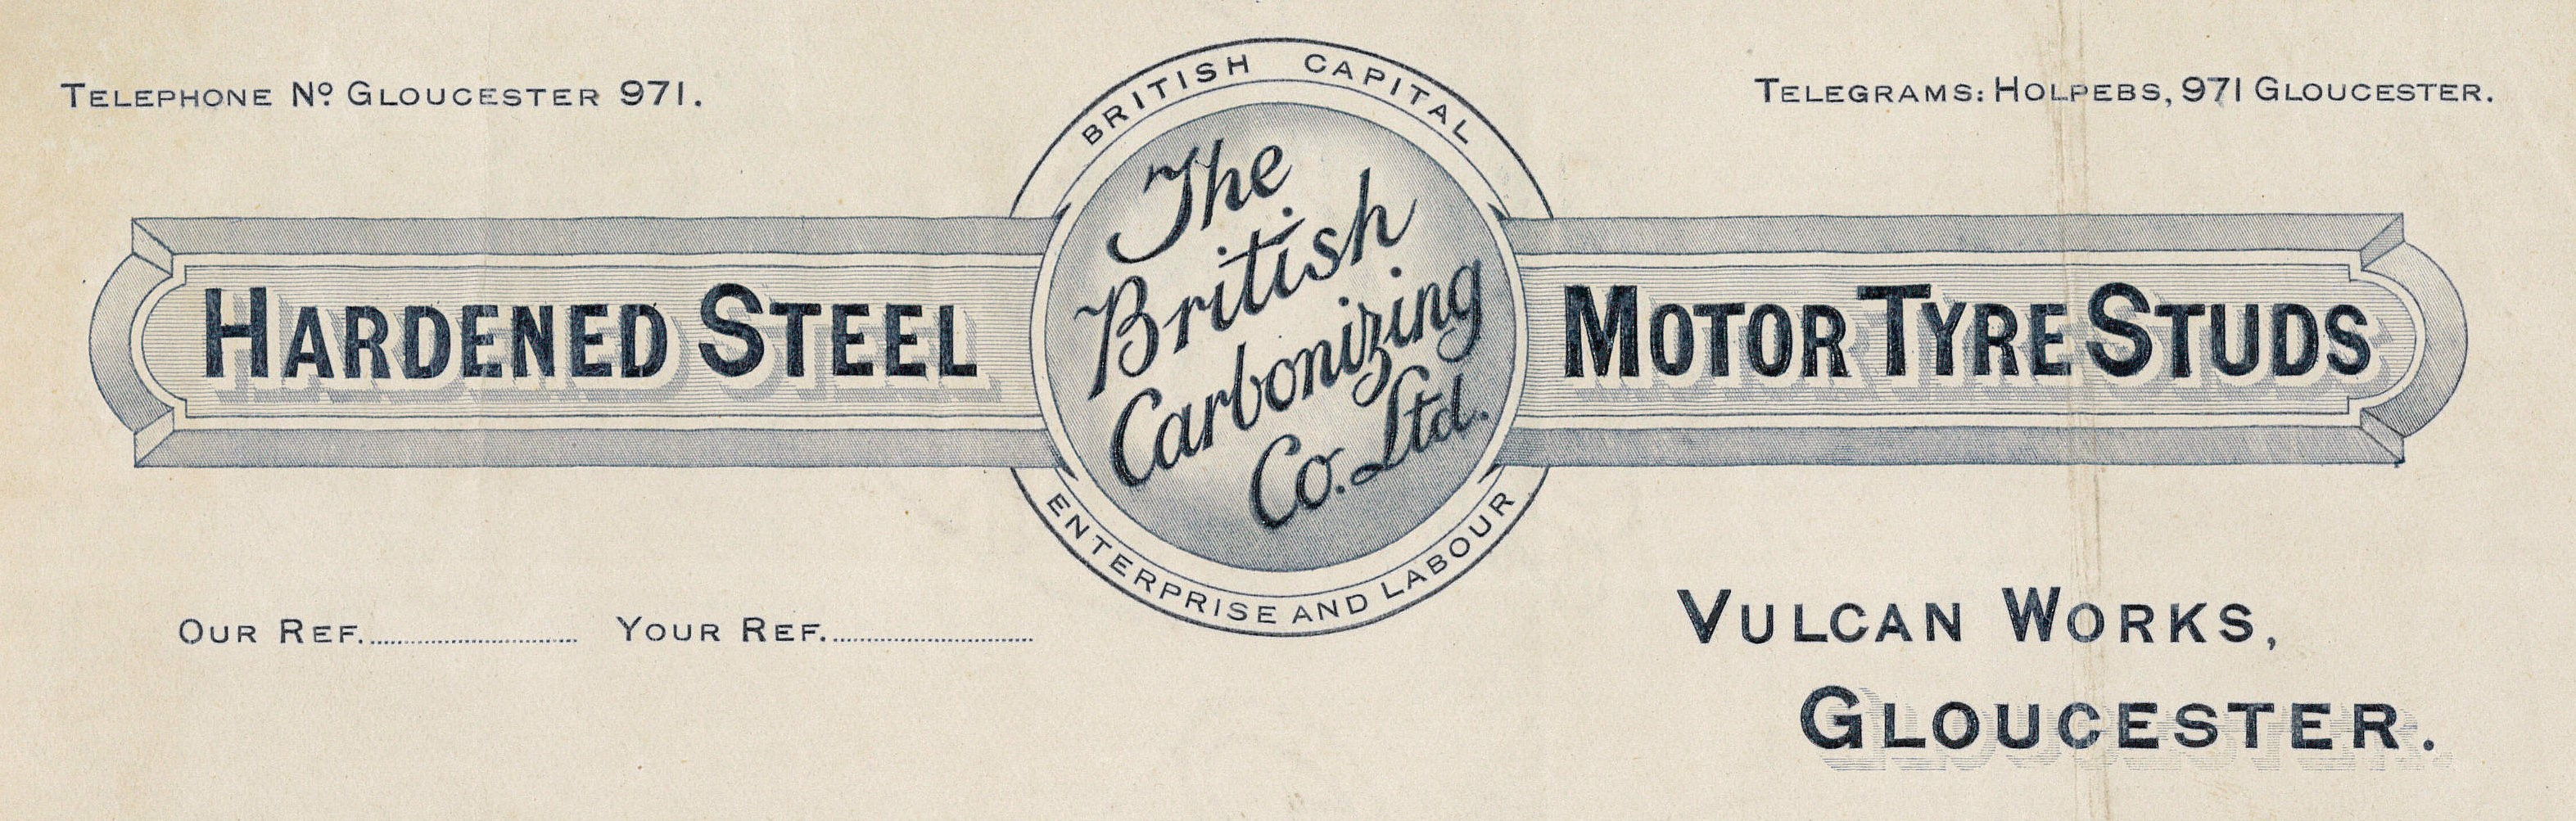 The British Carbonizing Company founded